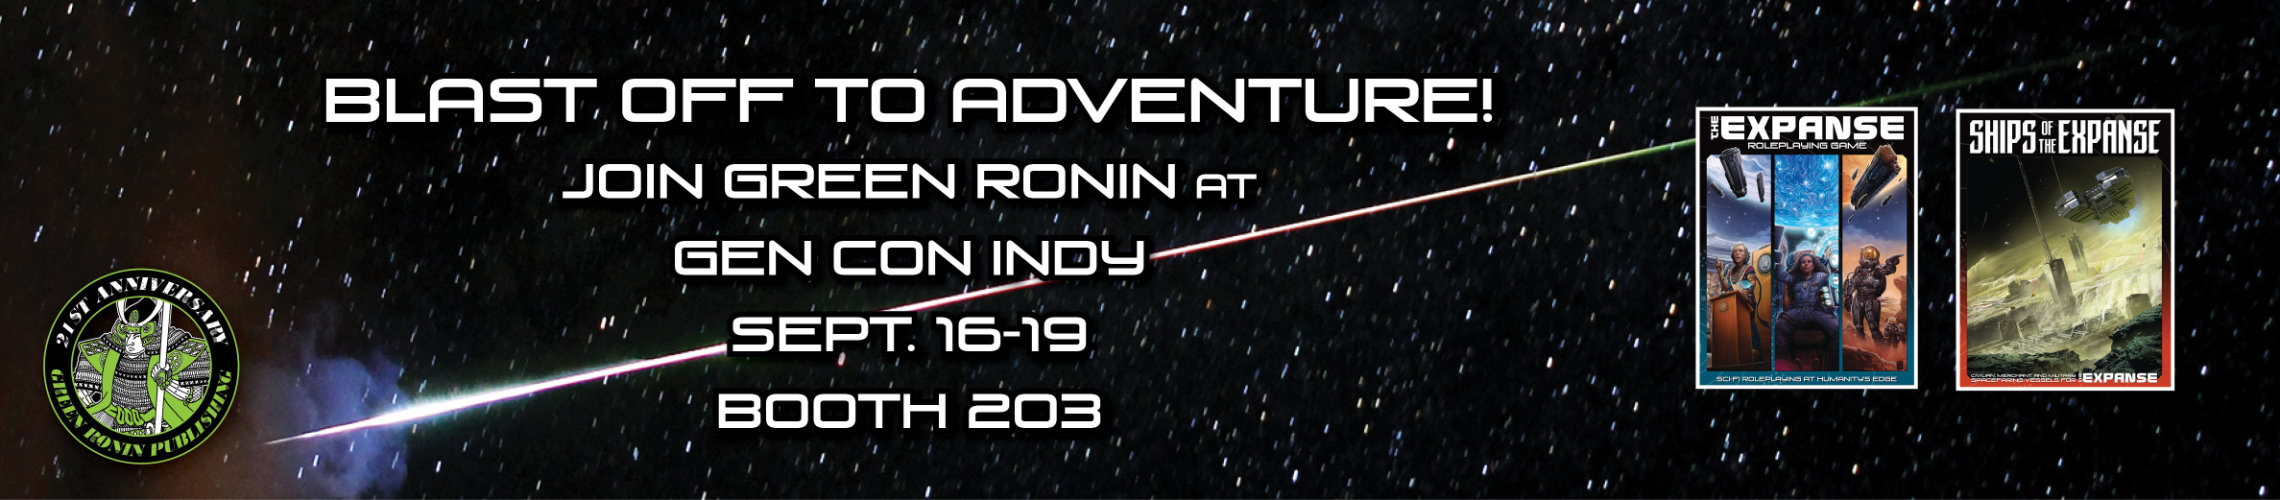 Blast Off To Adventure! Join Green Ronin At Gen Con Indy Sept 16-19 Booth 203